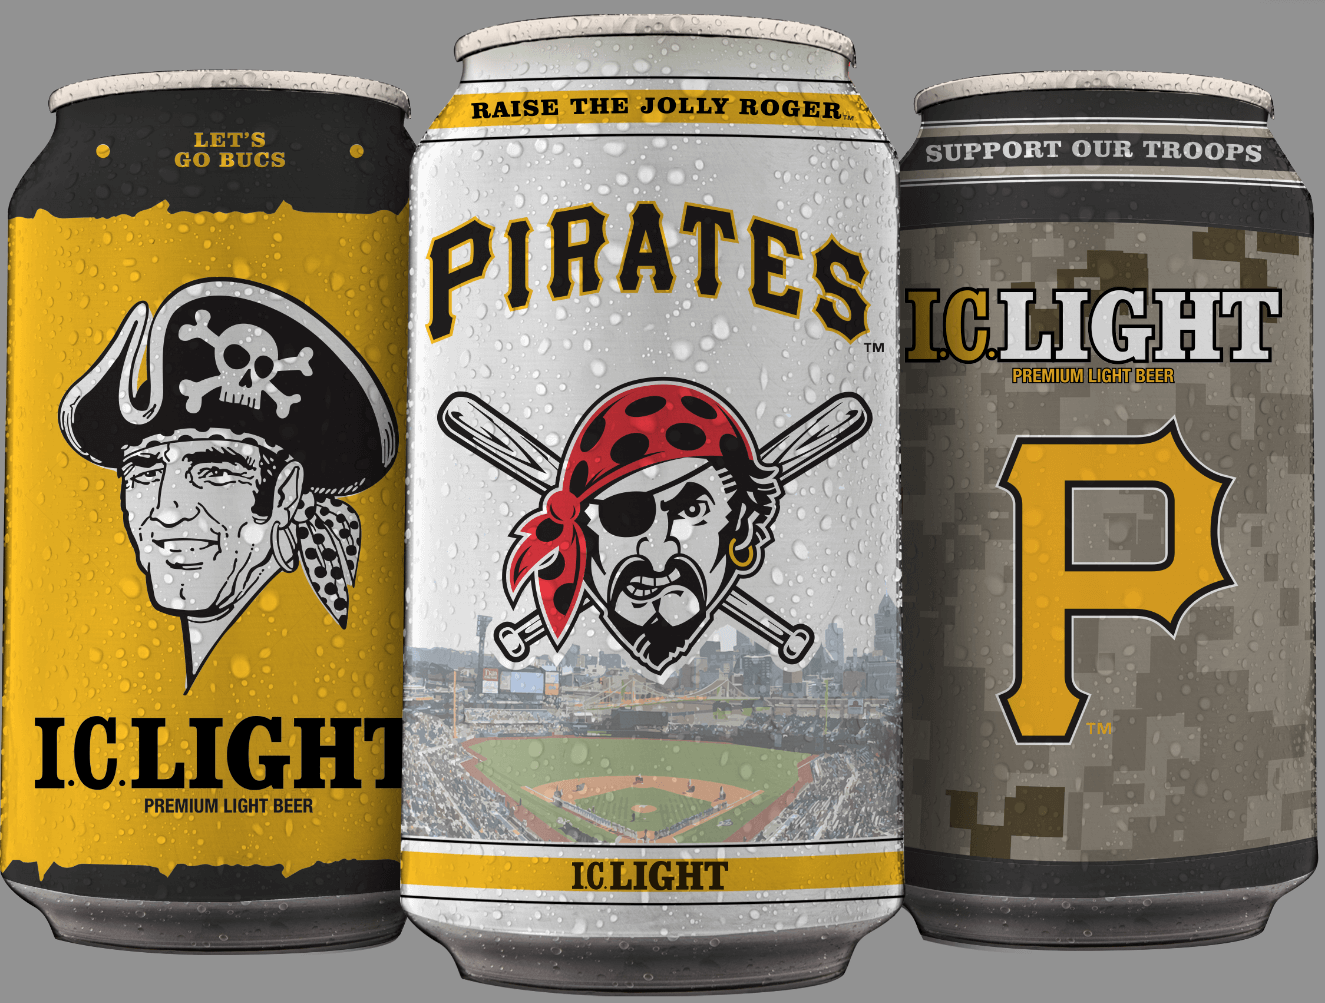 New I.C. Light Pittsburgh Pirates Collector Cans